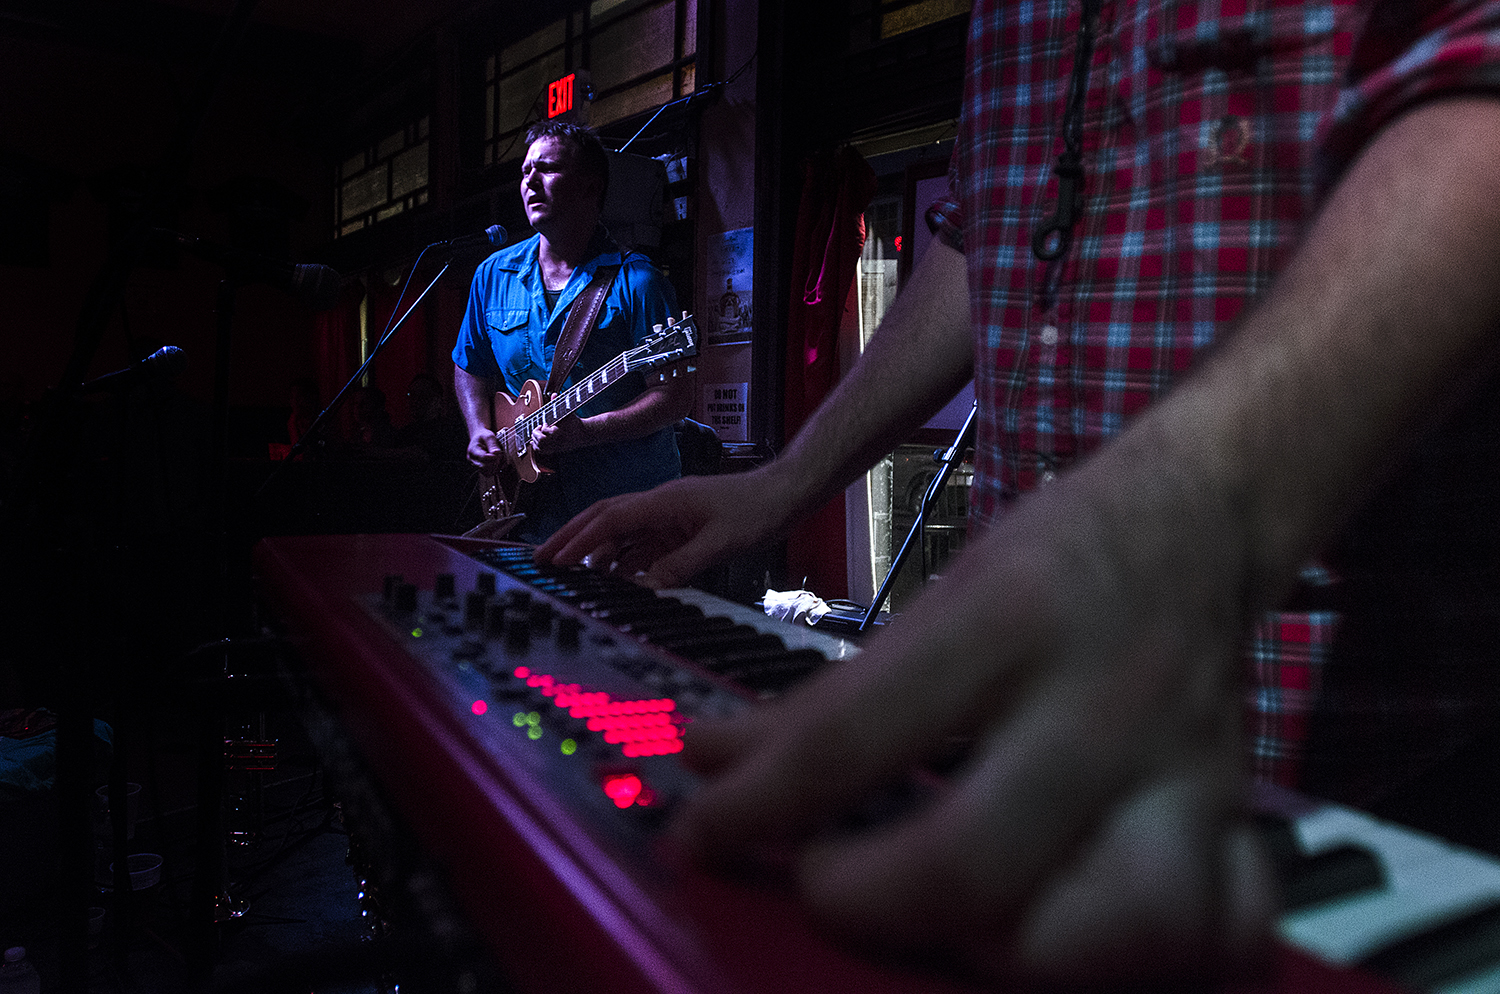 The Jesse Smith Project plays at The Maison on June 27, 2015. (Photo by Katie Sikora)